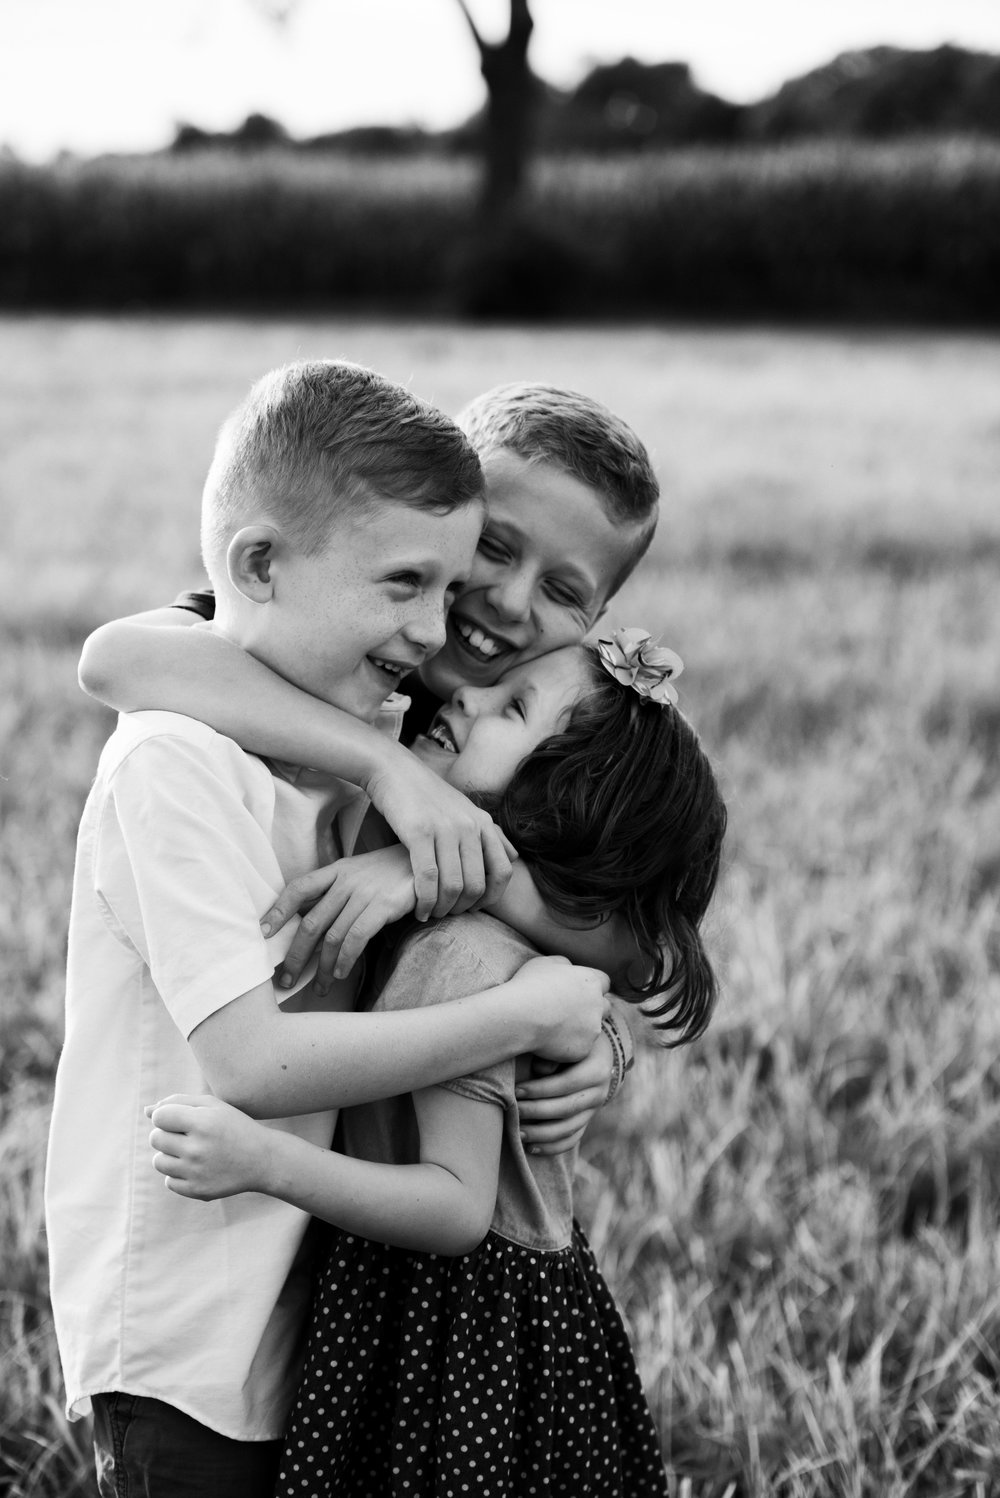 kids hugging each other in bw-4838.jpg